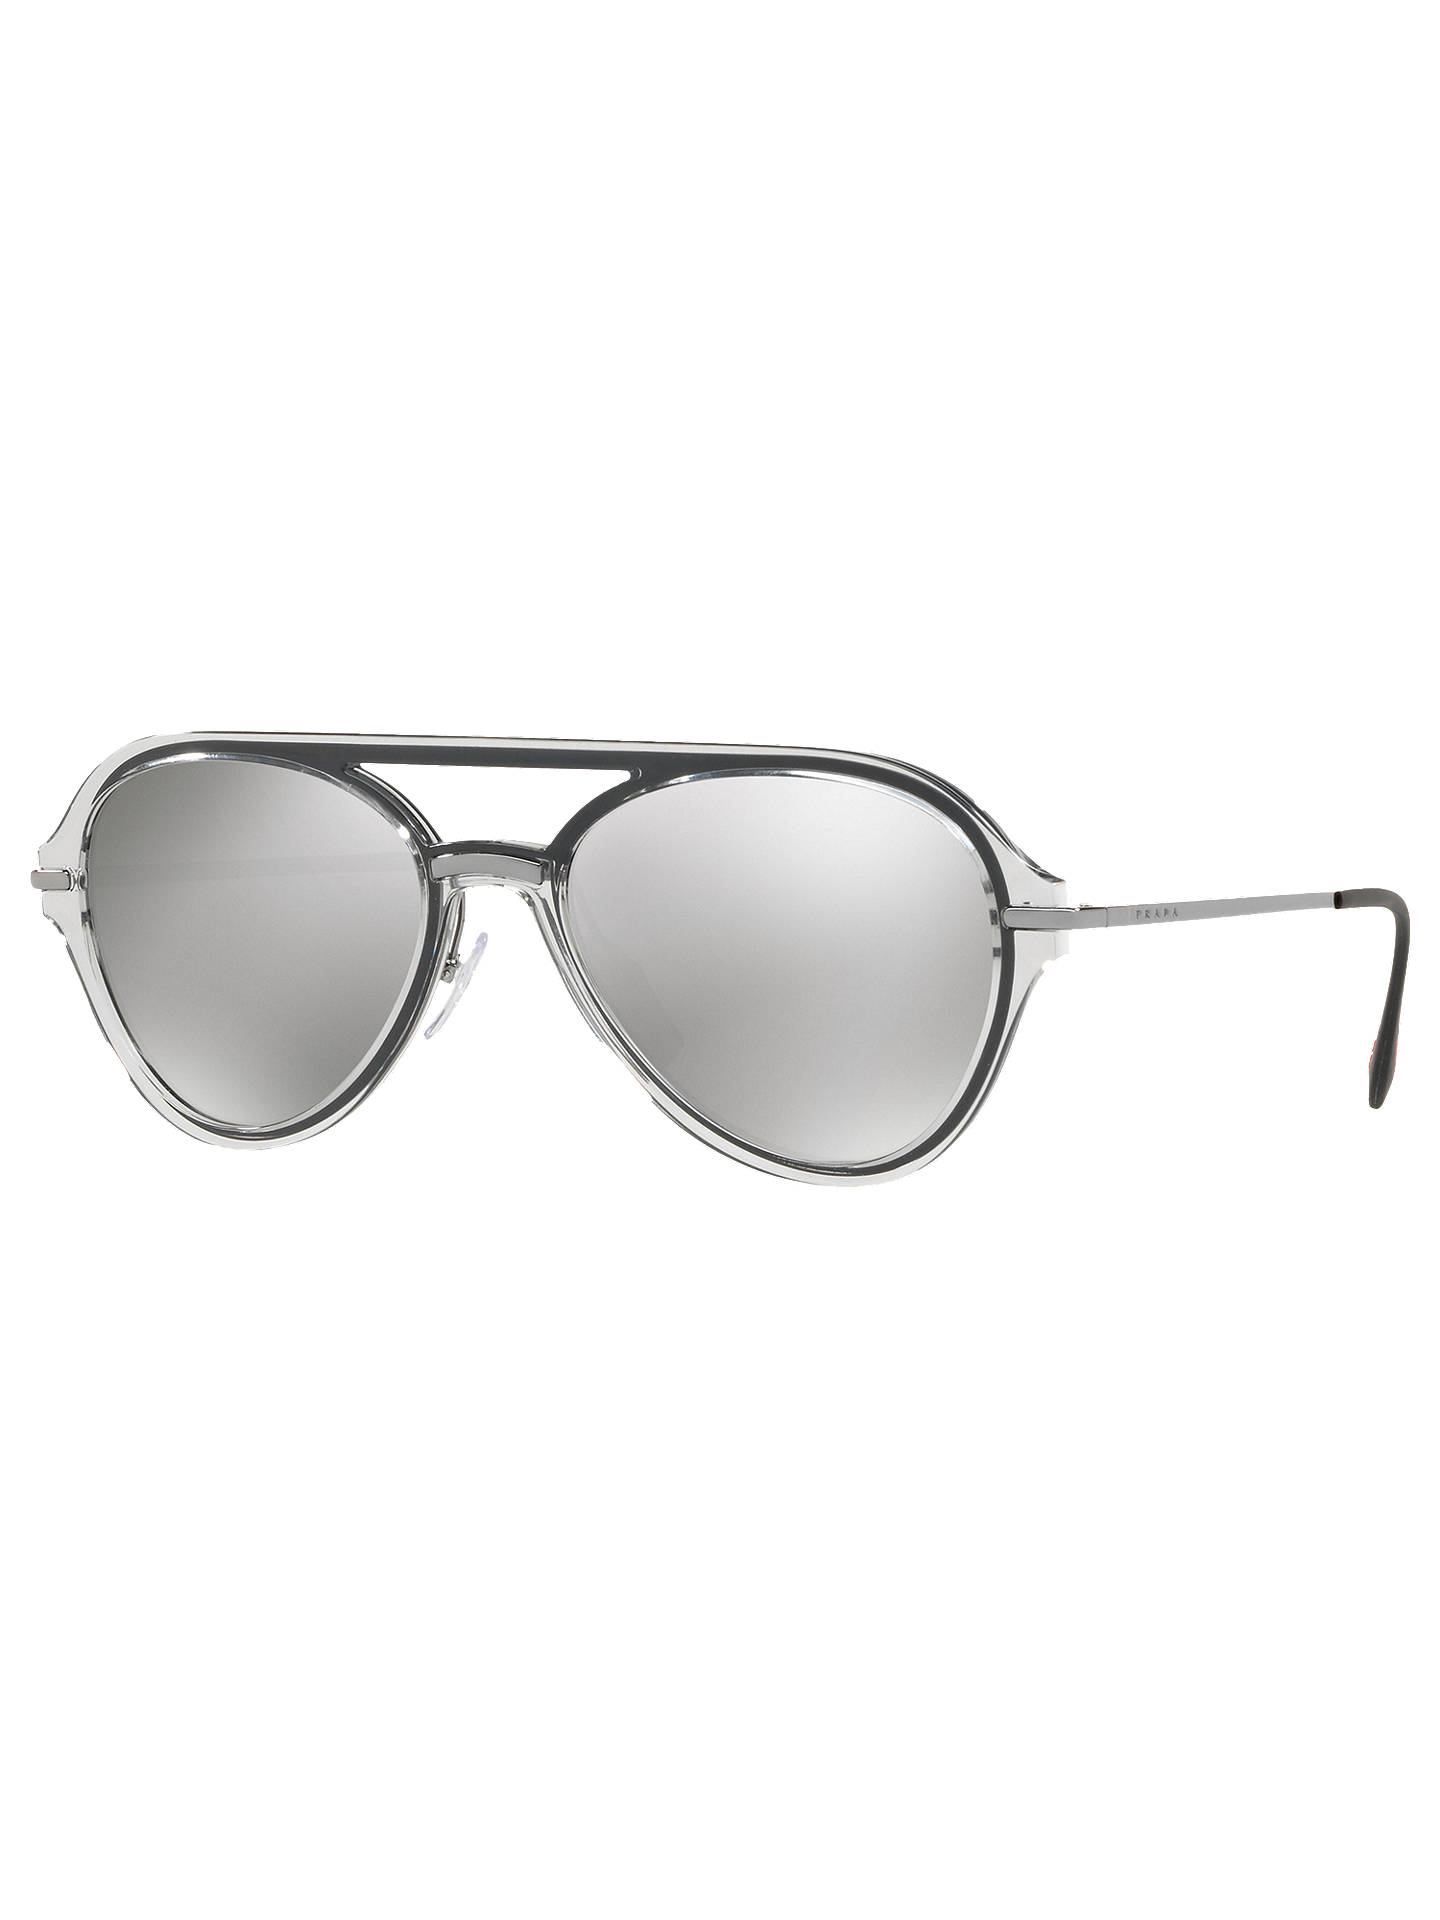 08de6d5bd17 Prada 04TS 57 Men s Polarised Aviator Sunglasses at John Lewis ...